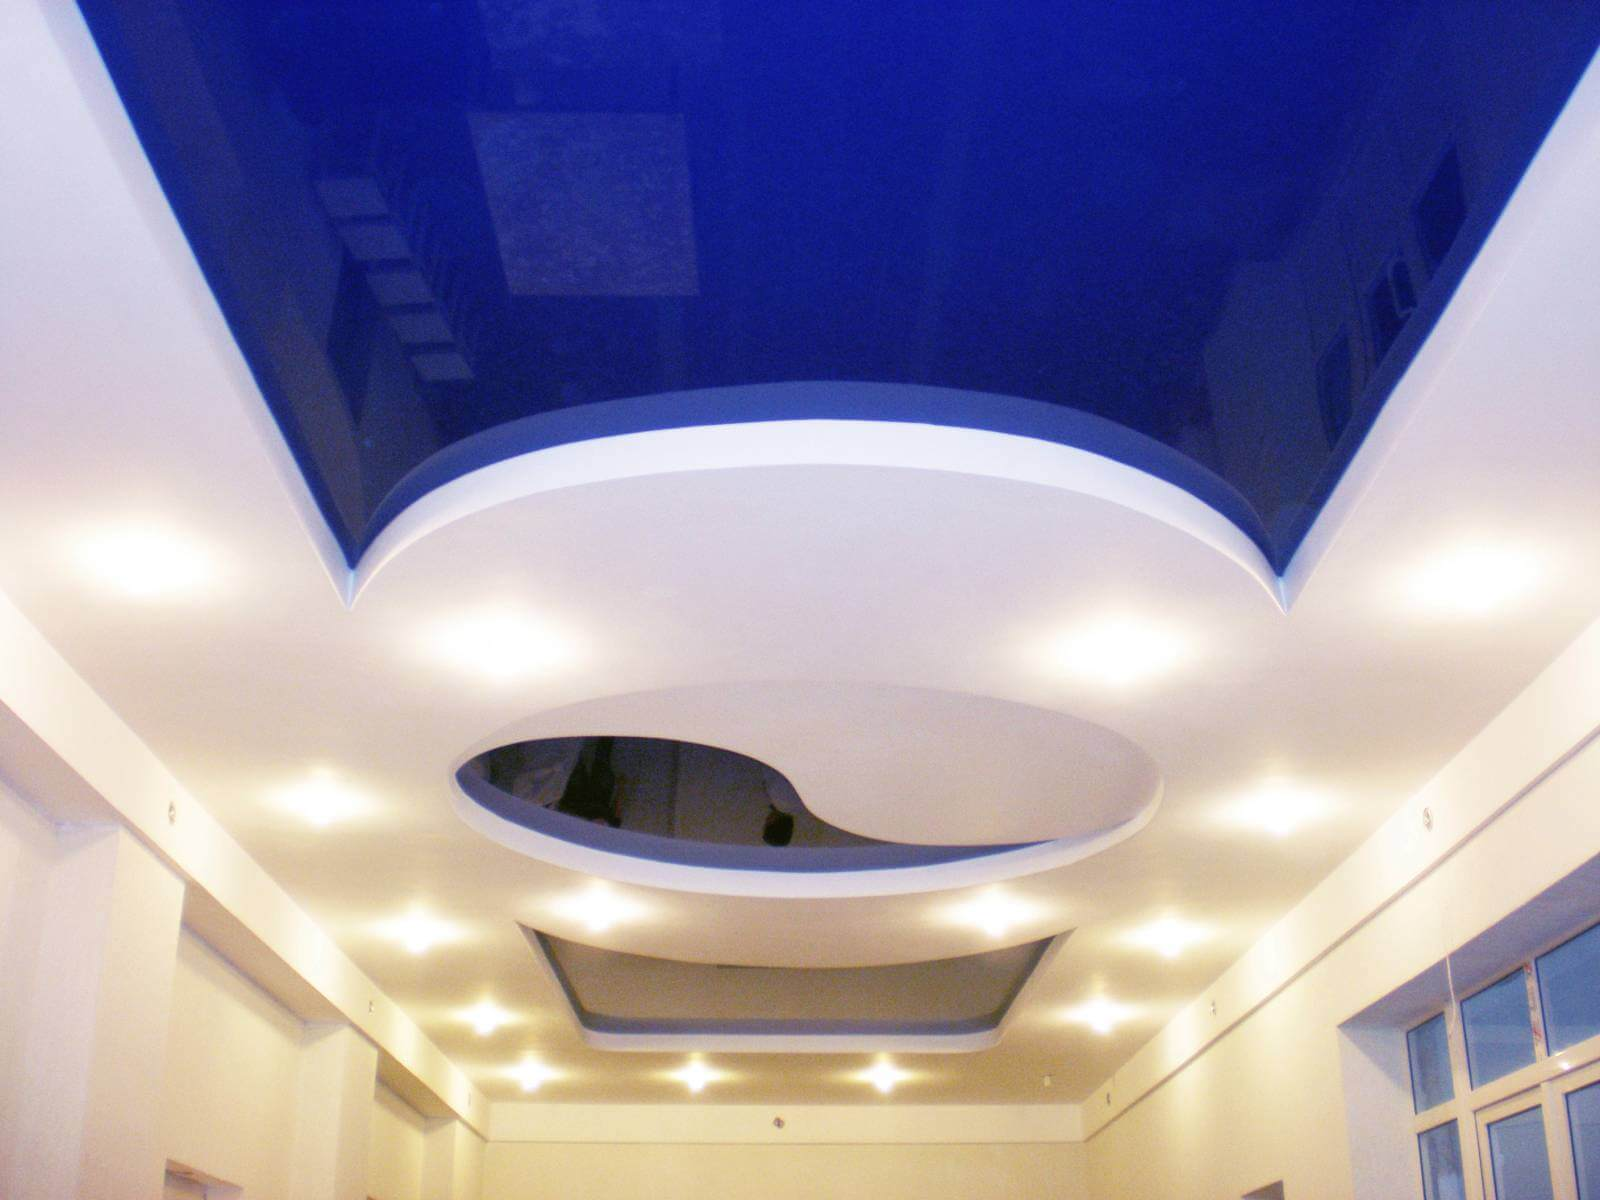 Combined Stretched Suspended construction of the ceiling